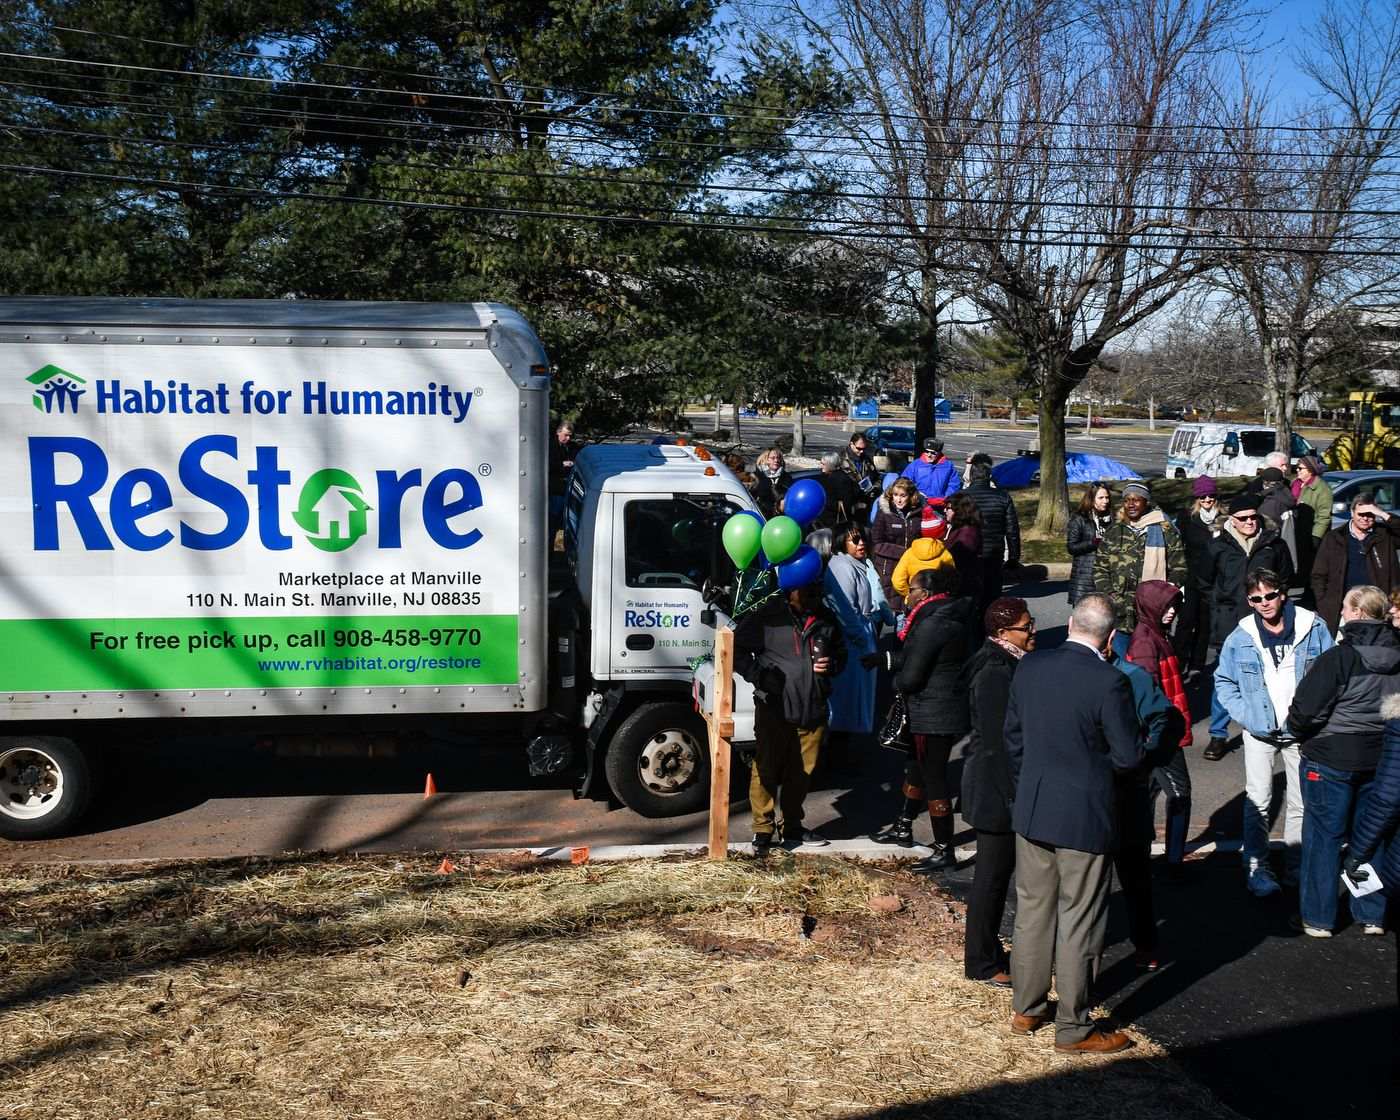 Habitat For Humanity To Close Restore Plan To Set Up Drop Off Donations Pennlive Com